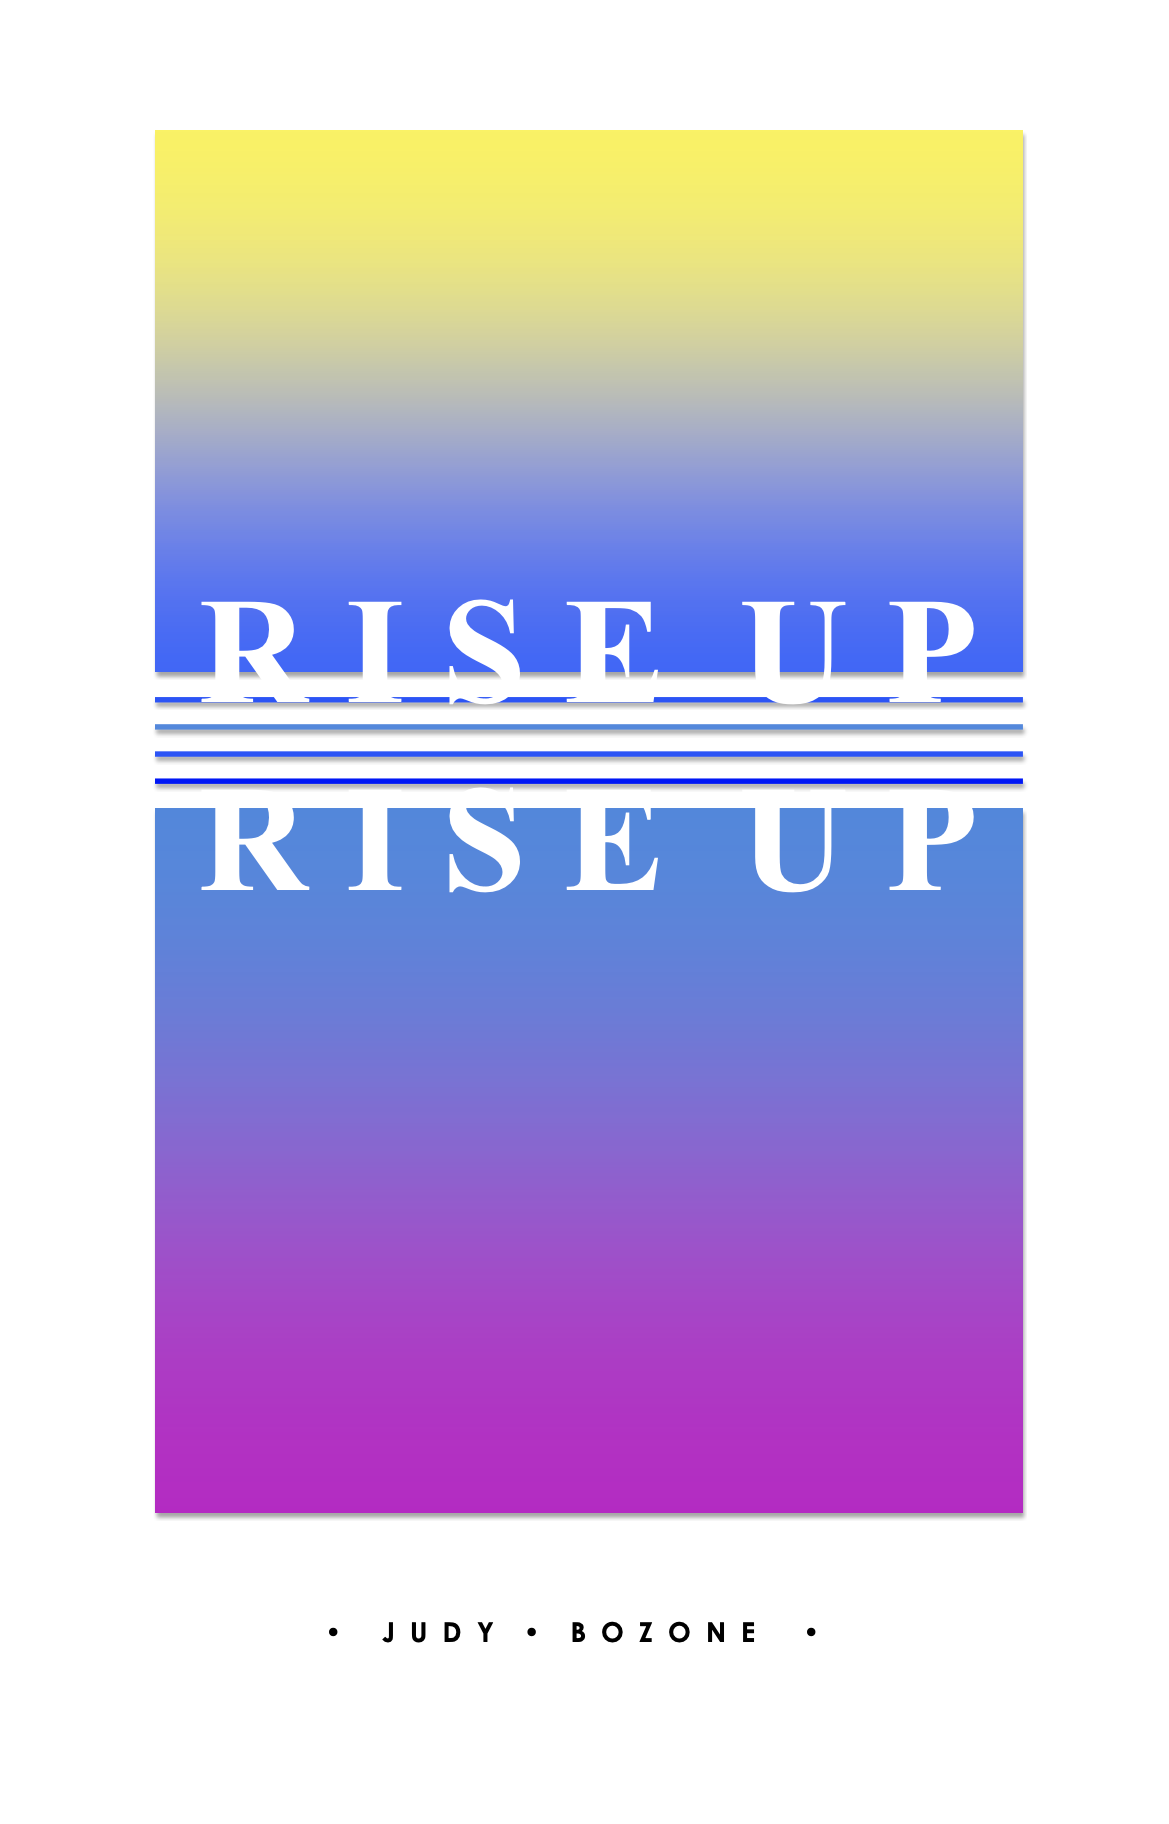 Rise Up (Score Only) by Judy Bozone